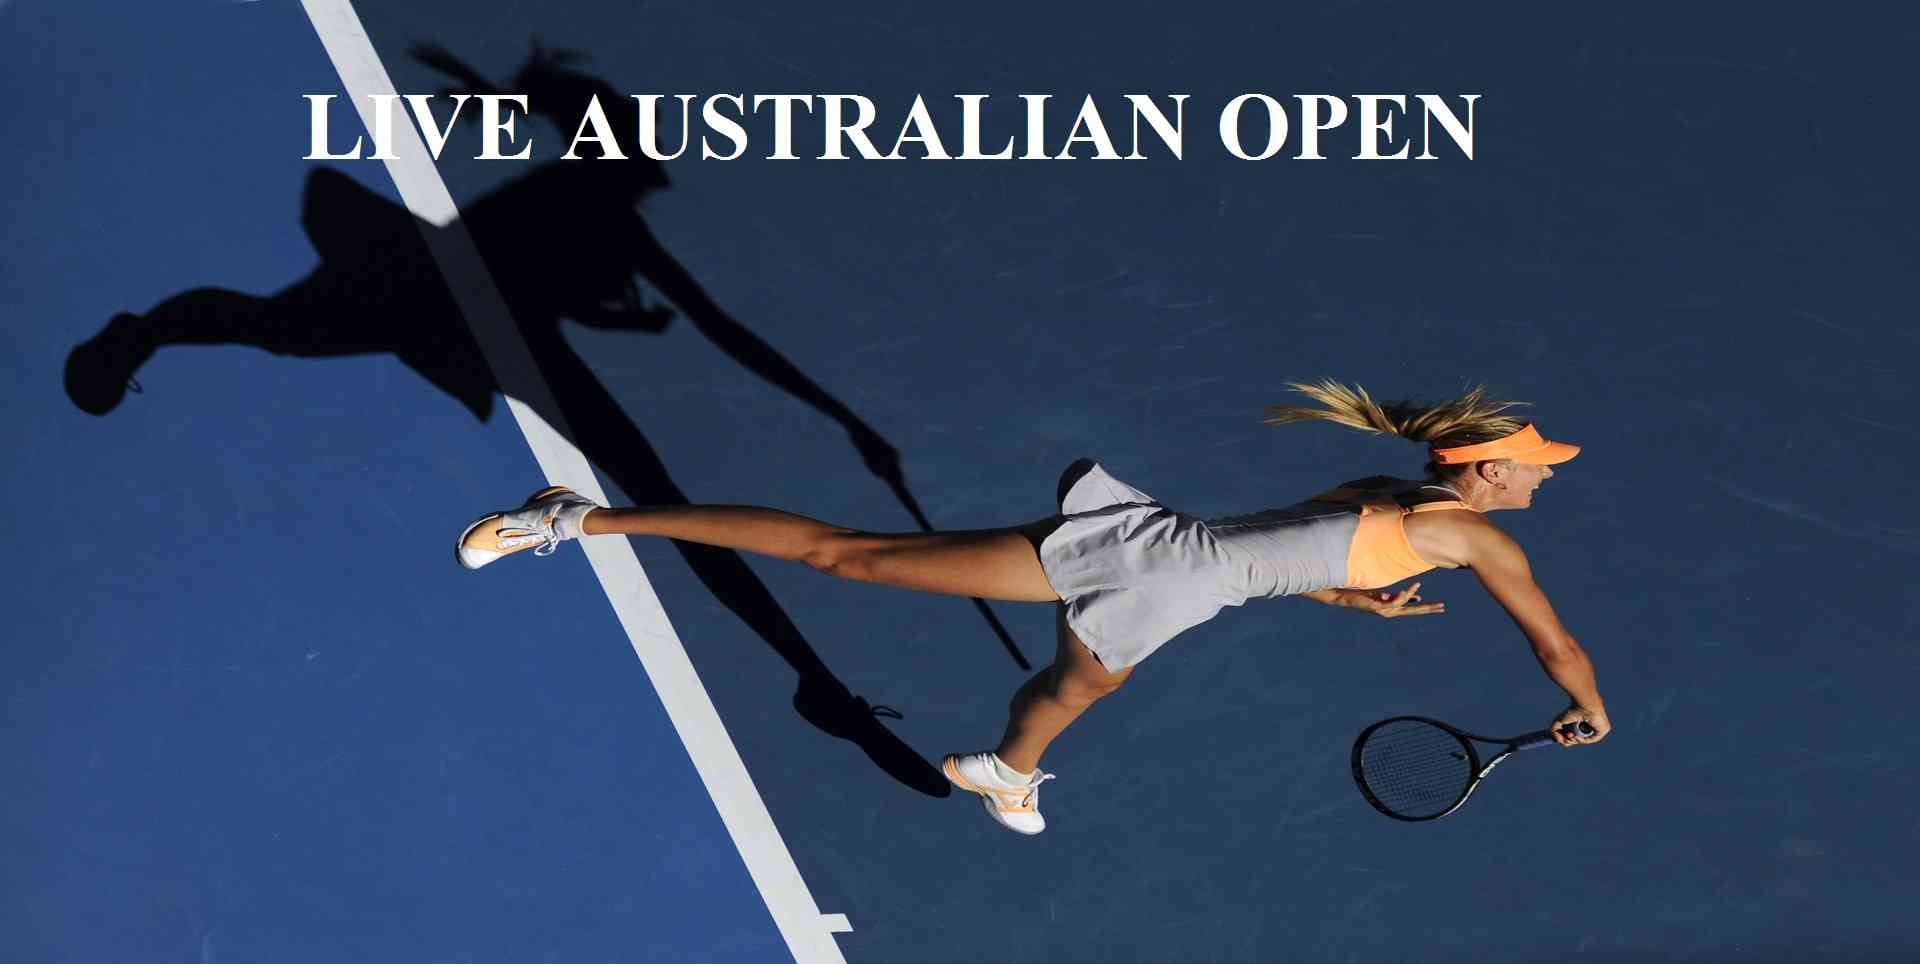 2017 Australian Open Finals Live Coverage